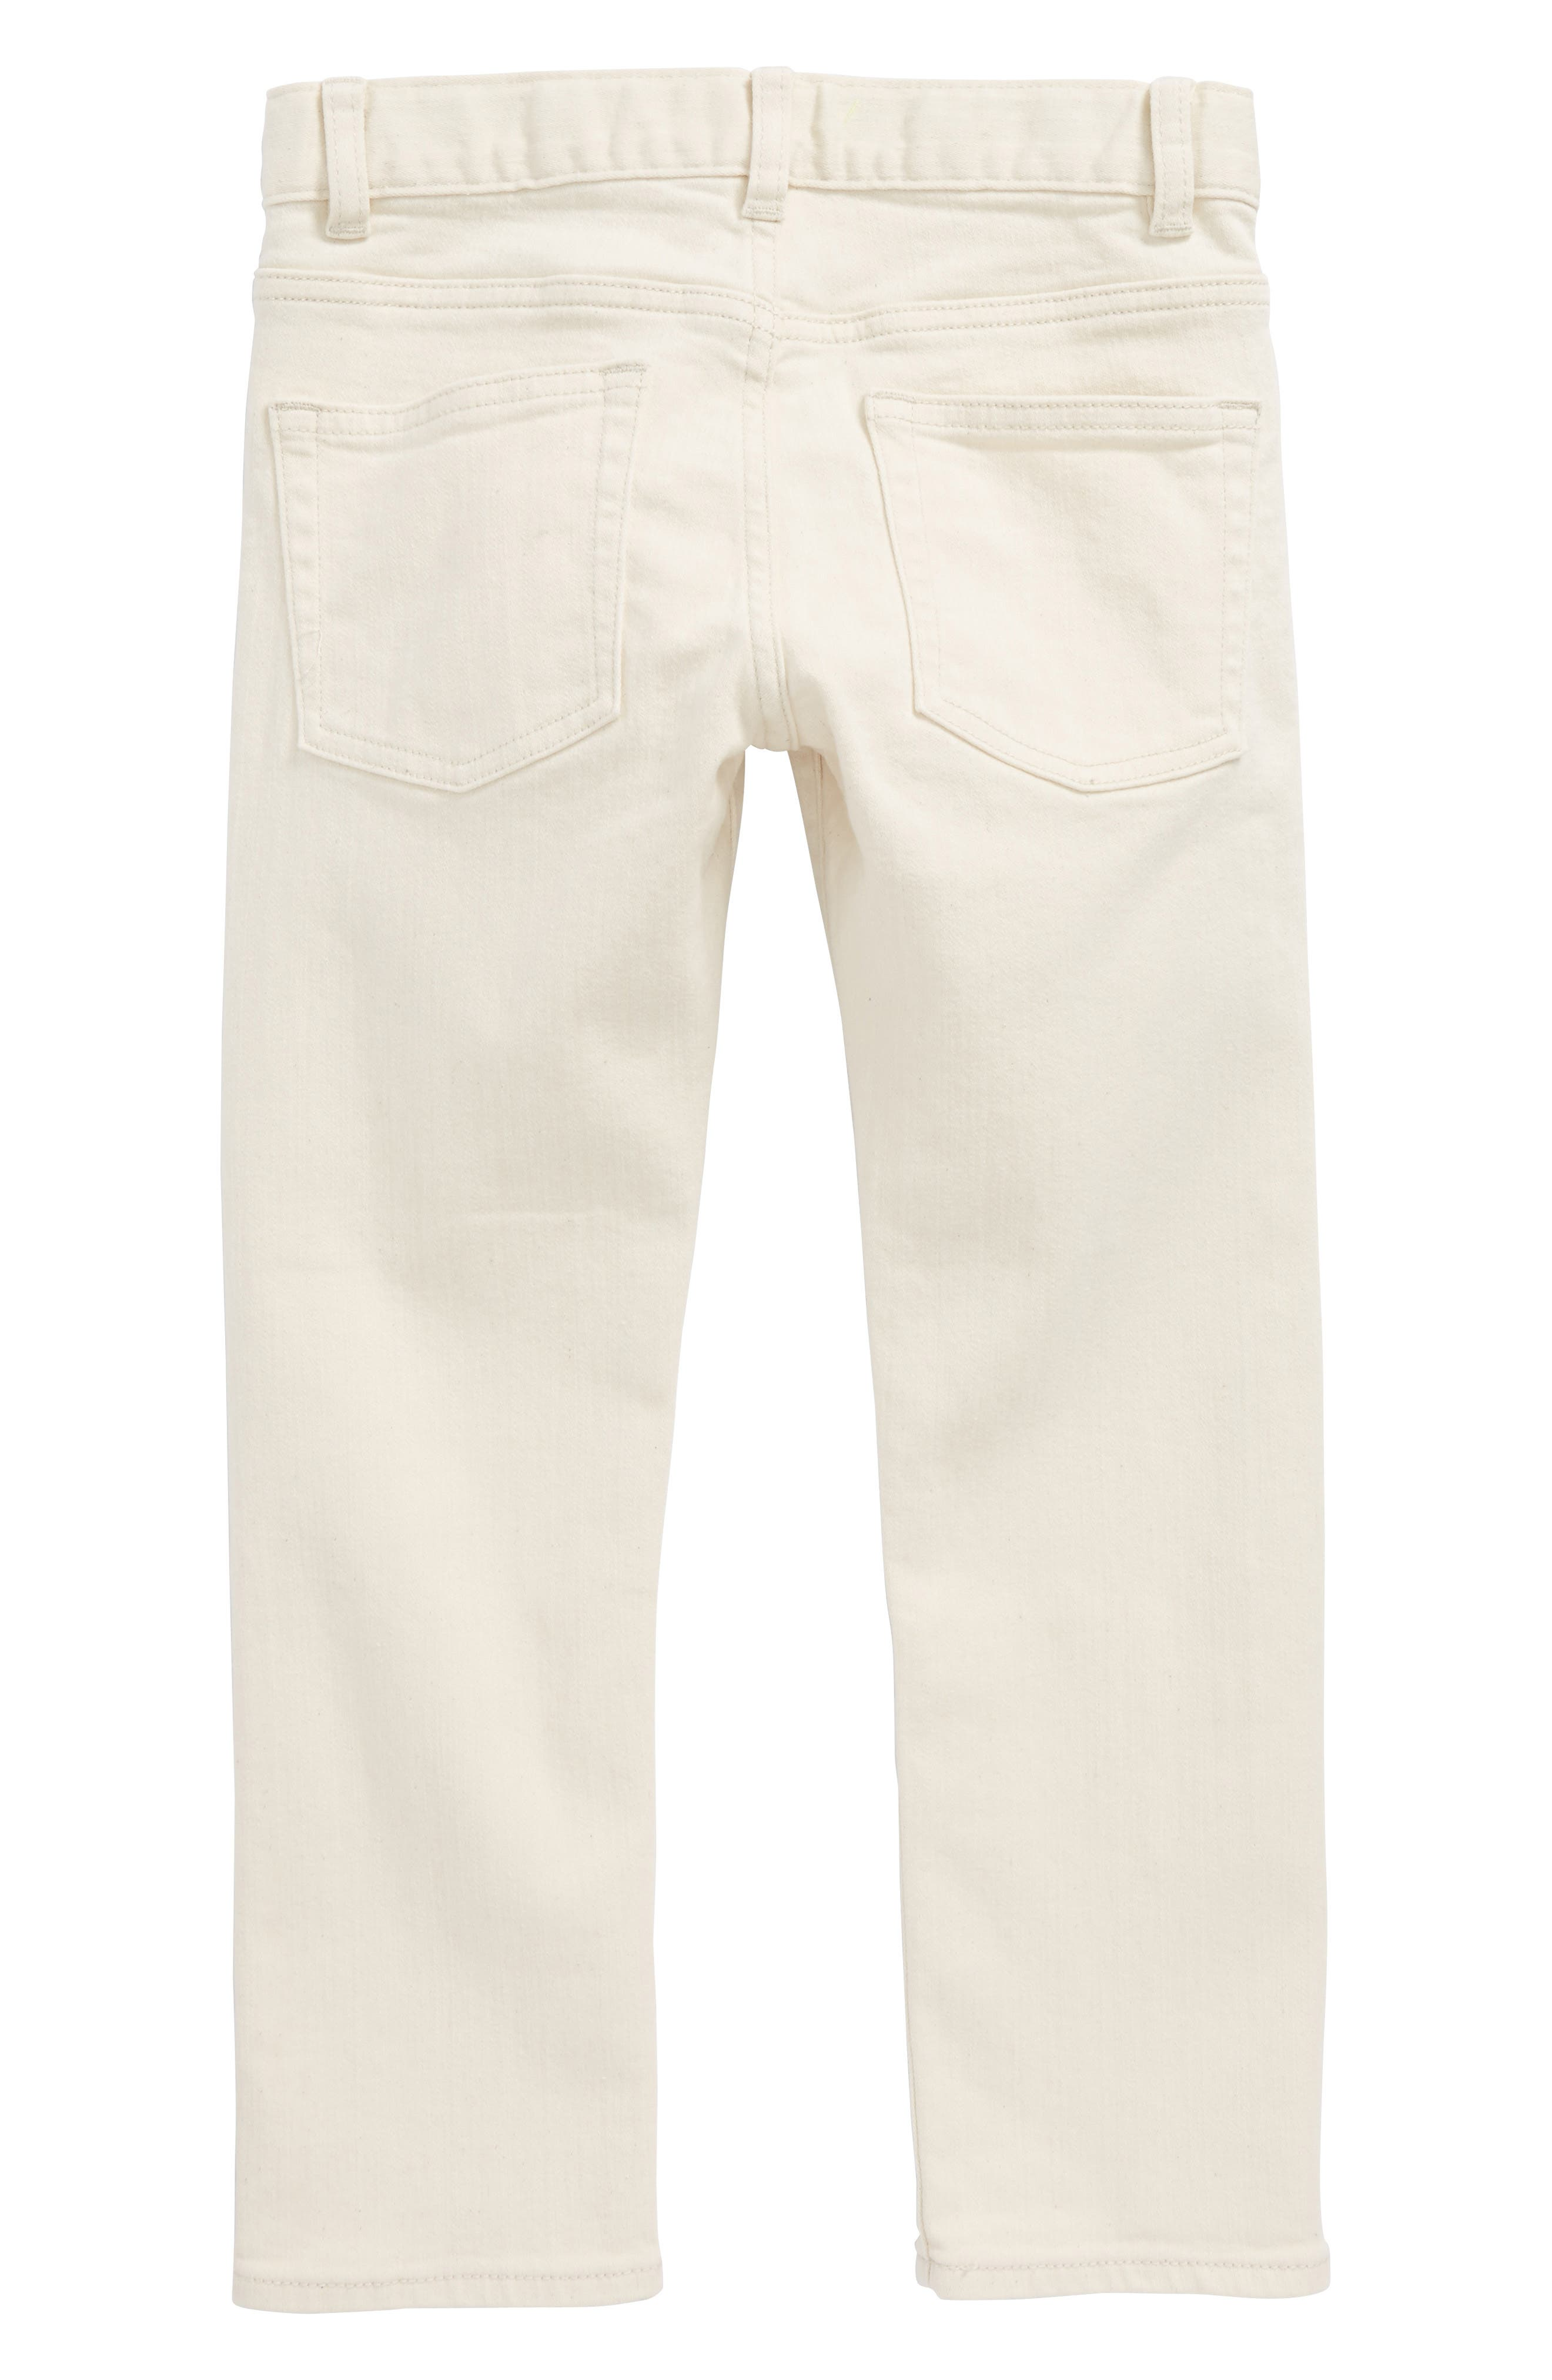 Ecru Slim Fit Pants,                             Alternate thumbnail 2, color,                             Ecru